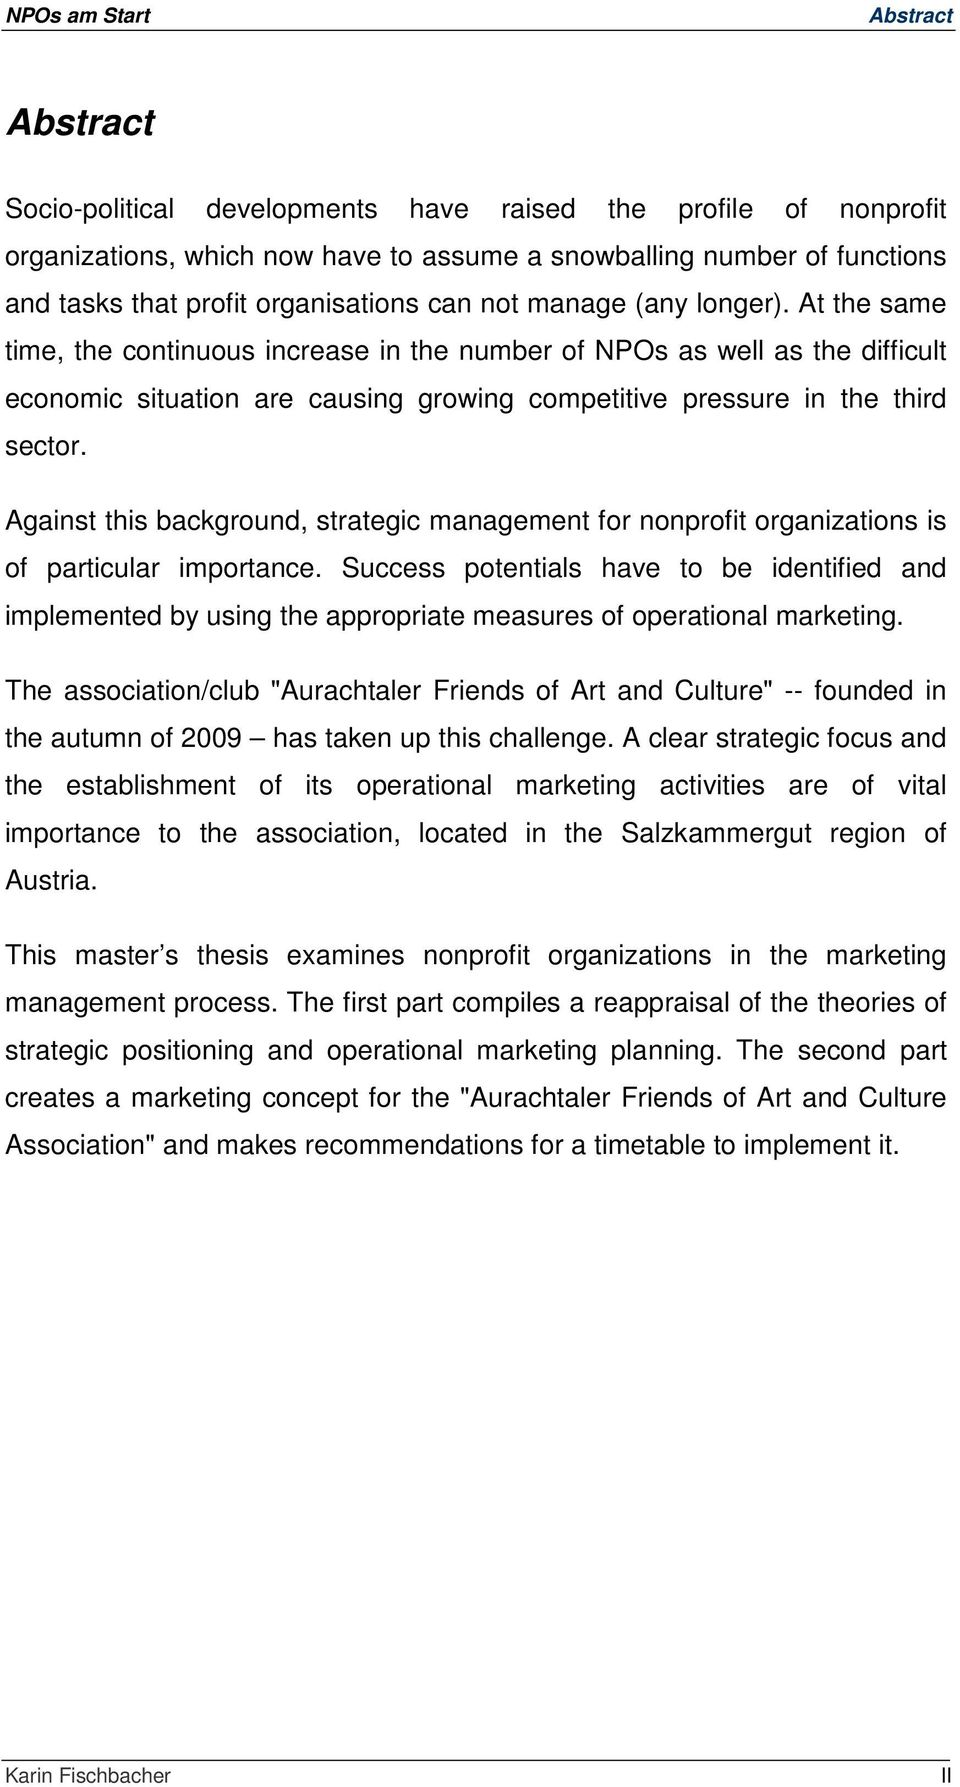 Against this background, strategic management for nonprofit organizations is of particular importance.